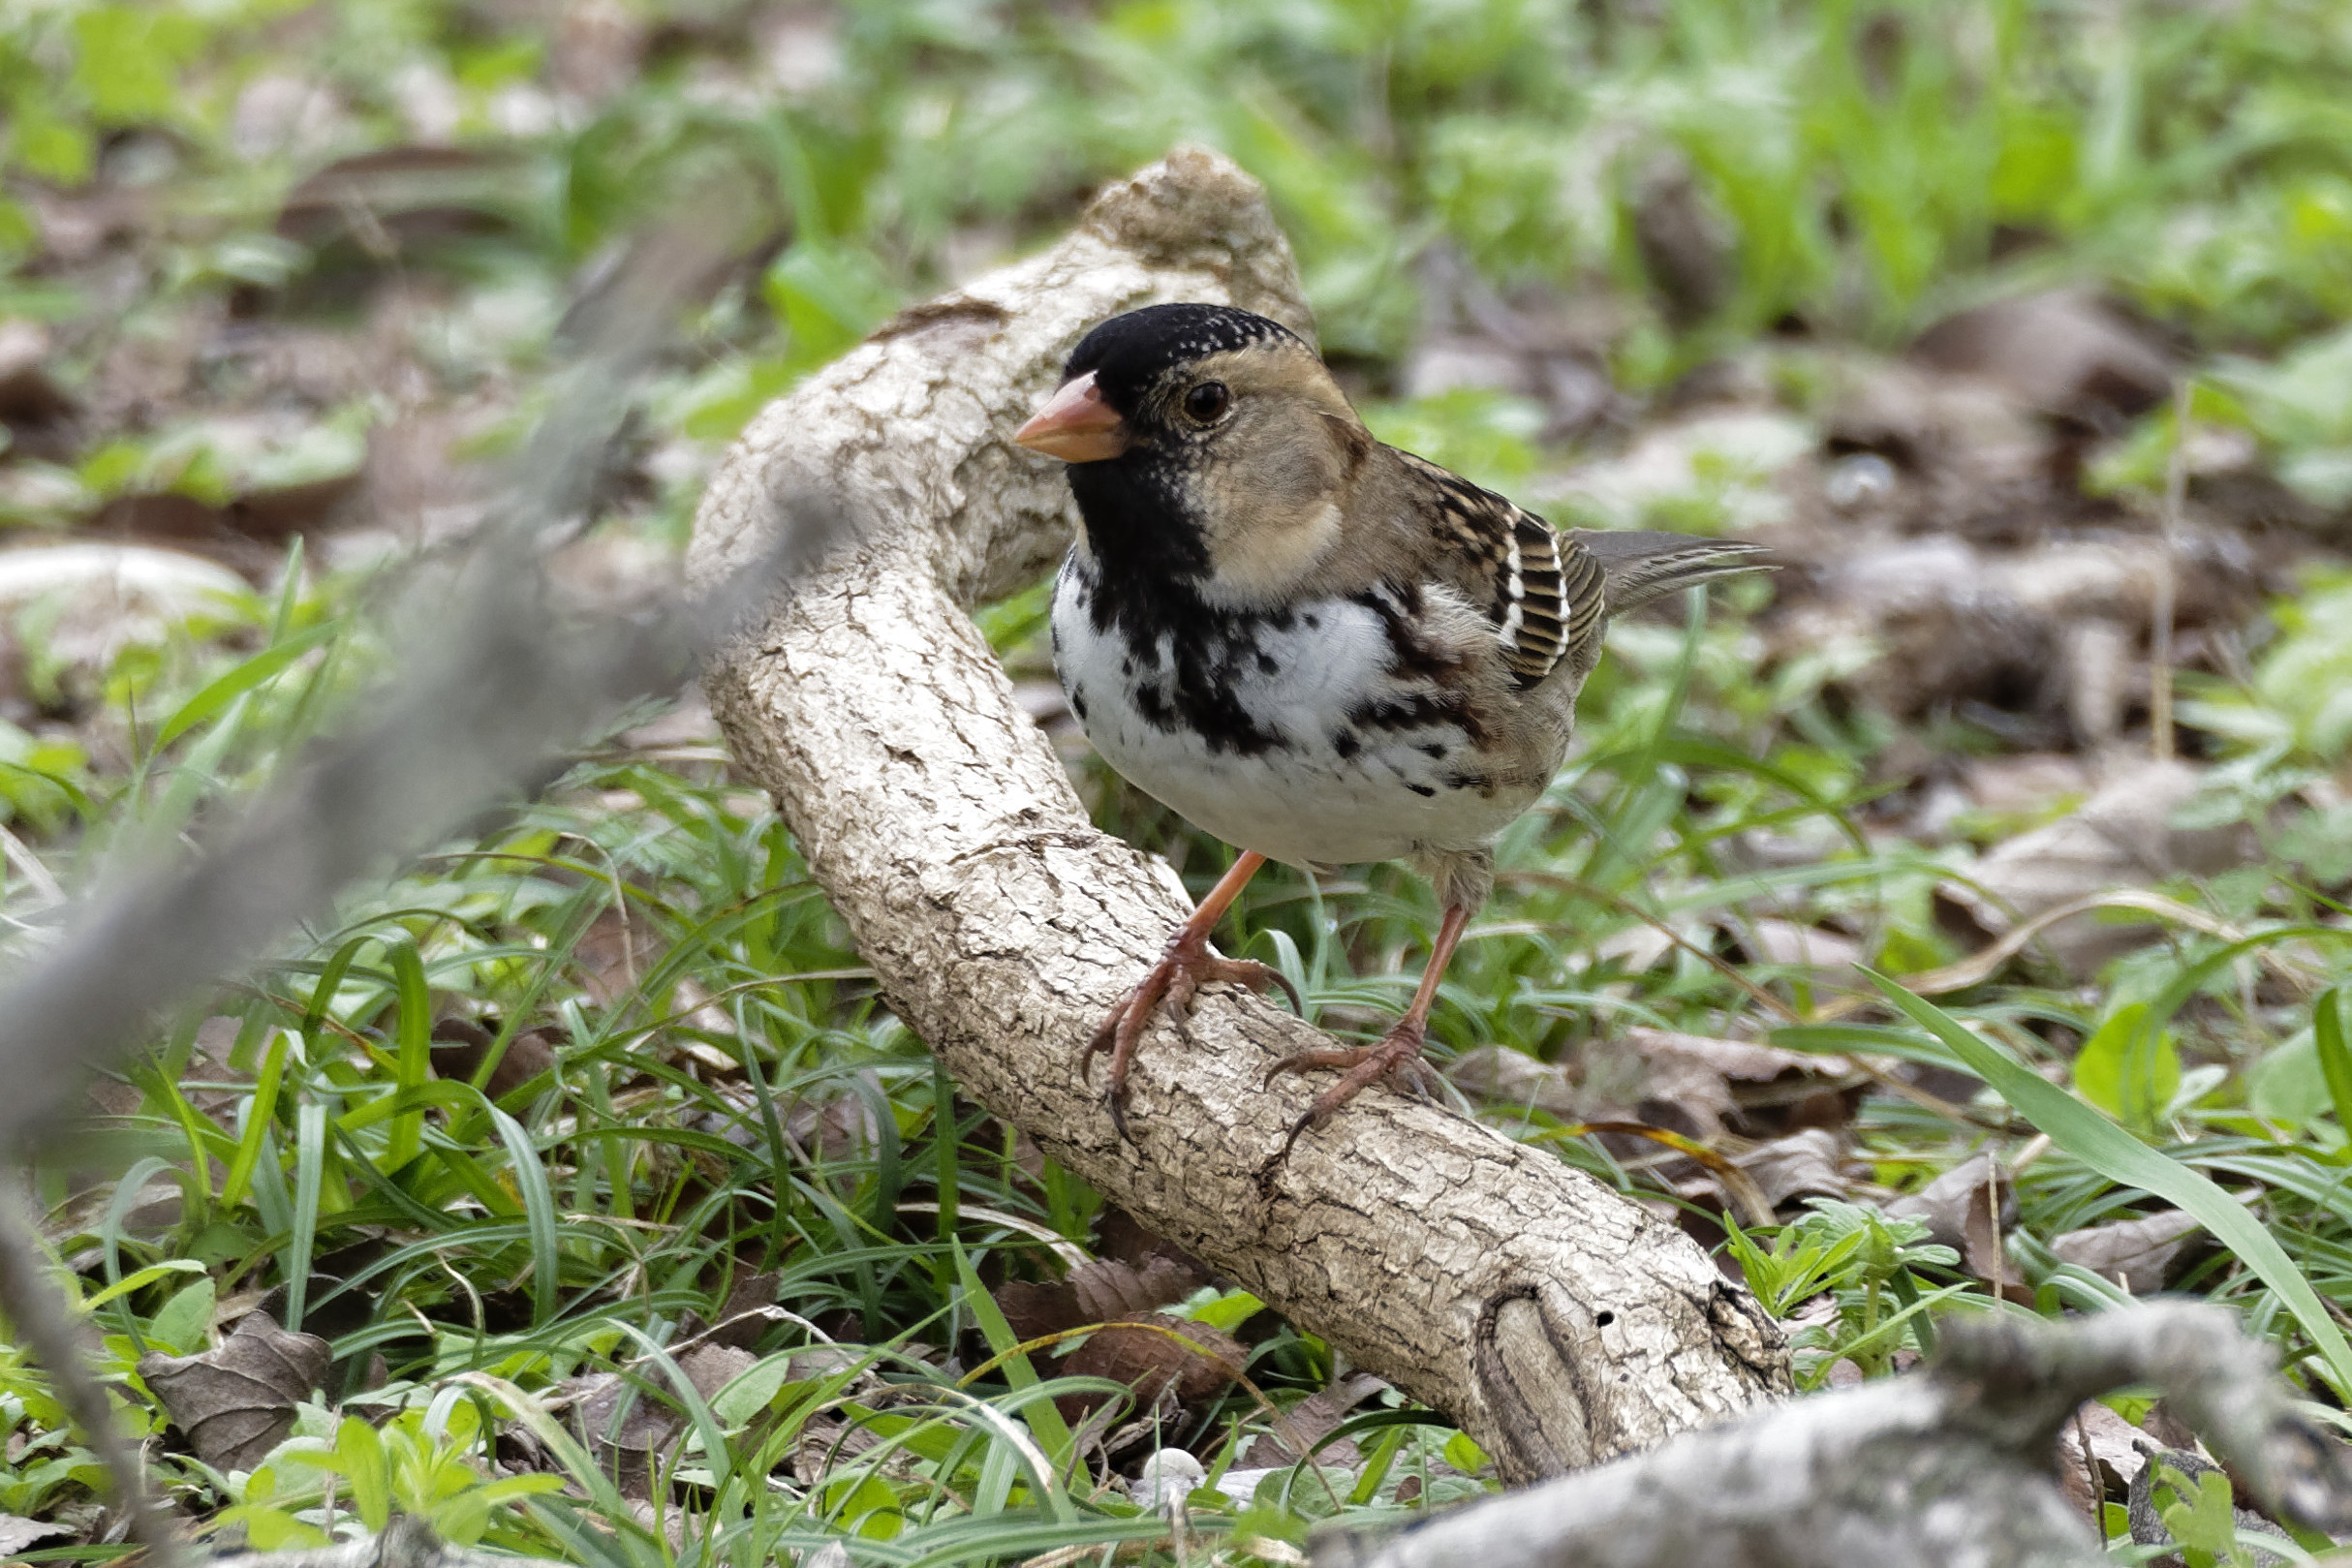 Species: Harris's Sparrow Photo Credit: Dina Perry Date: February 2018 Location: Crescent Bend Nature Park